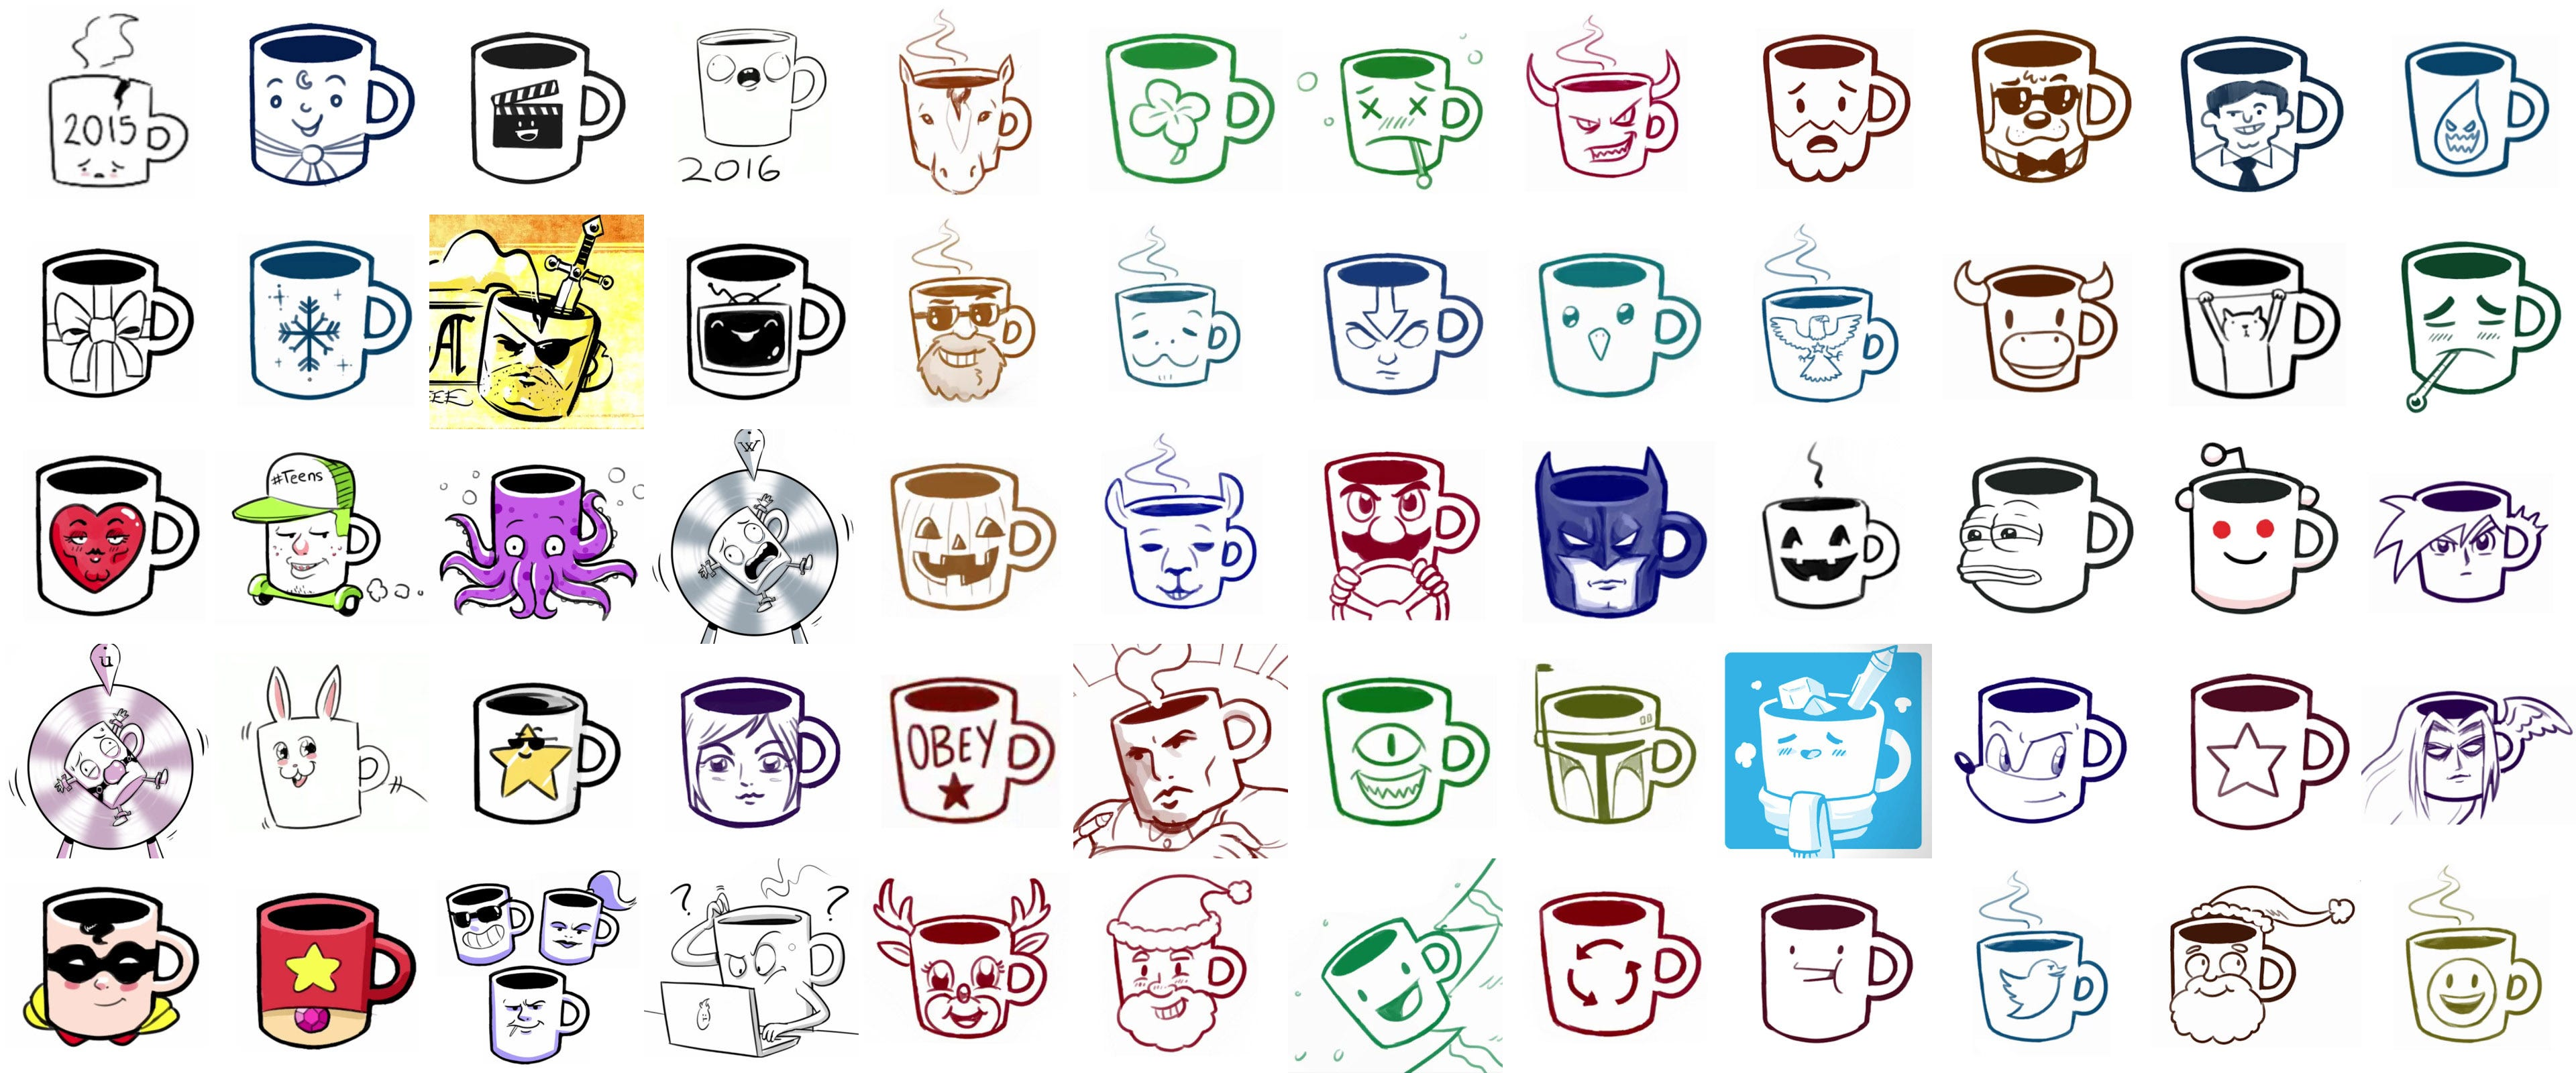 A collection of Drawfee mugs.